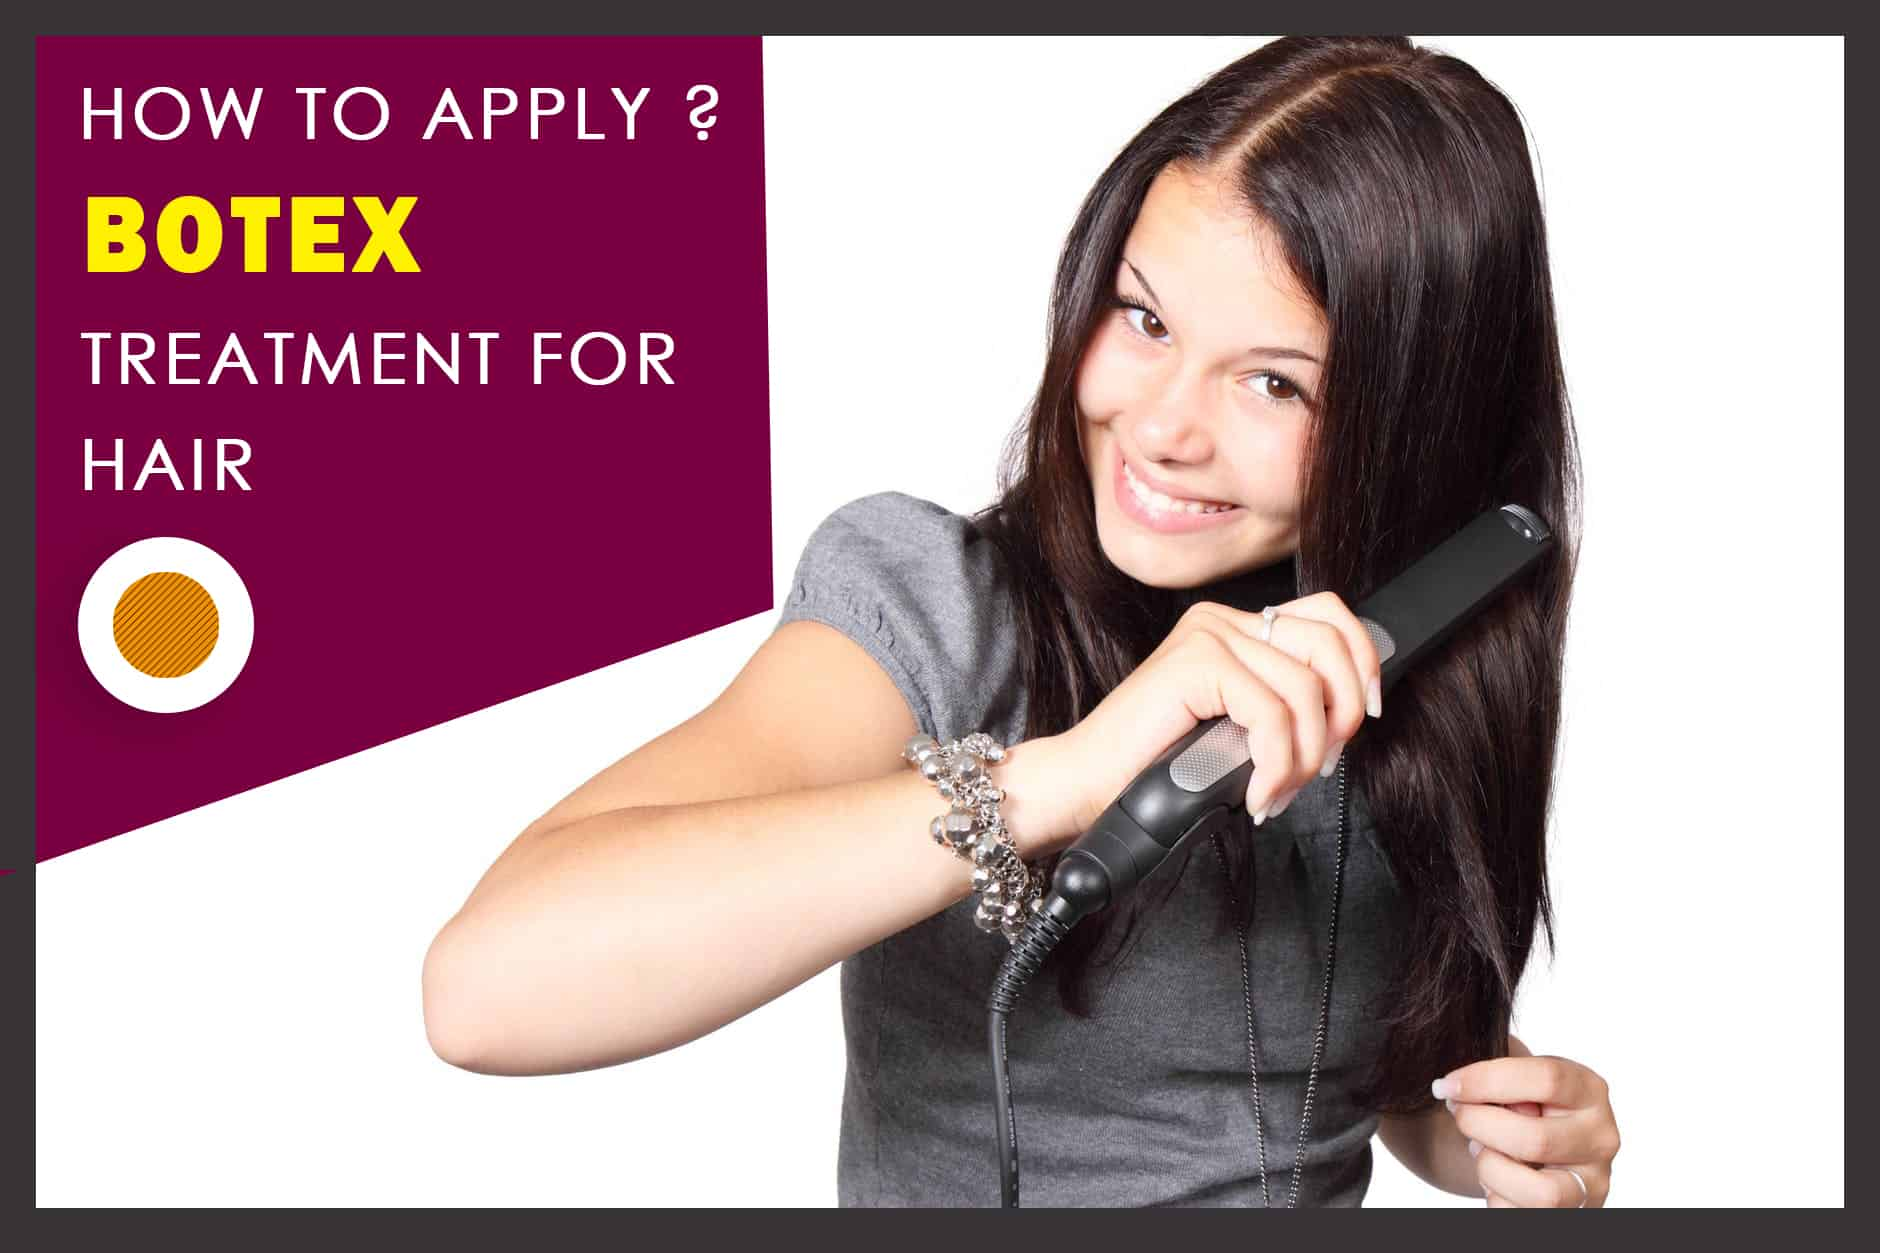 How to apply Botox treatment for hair